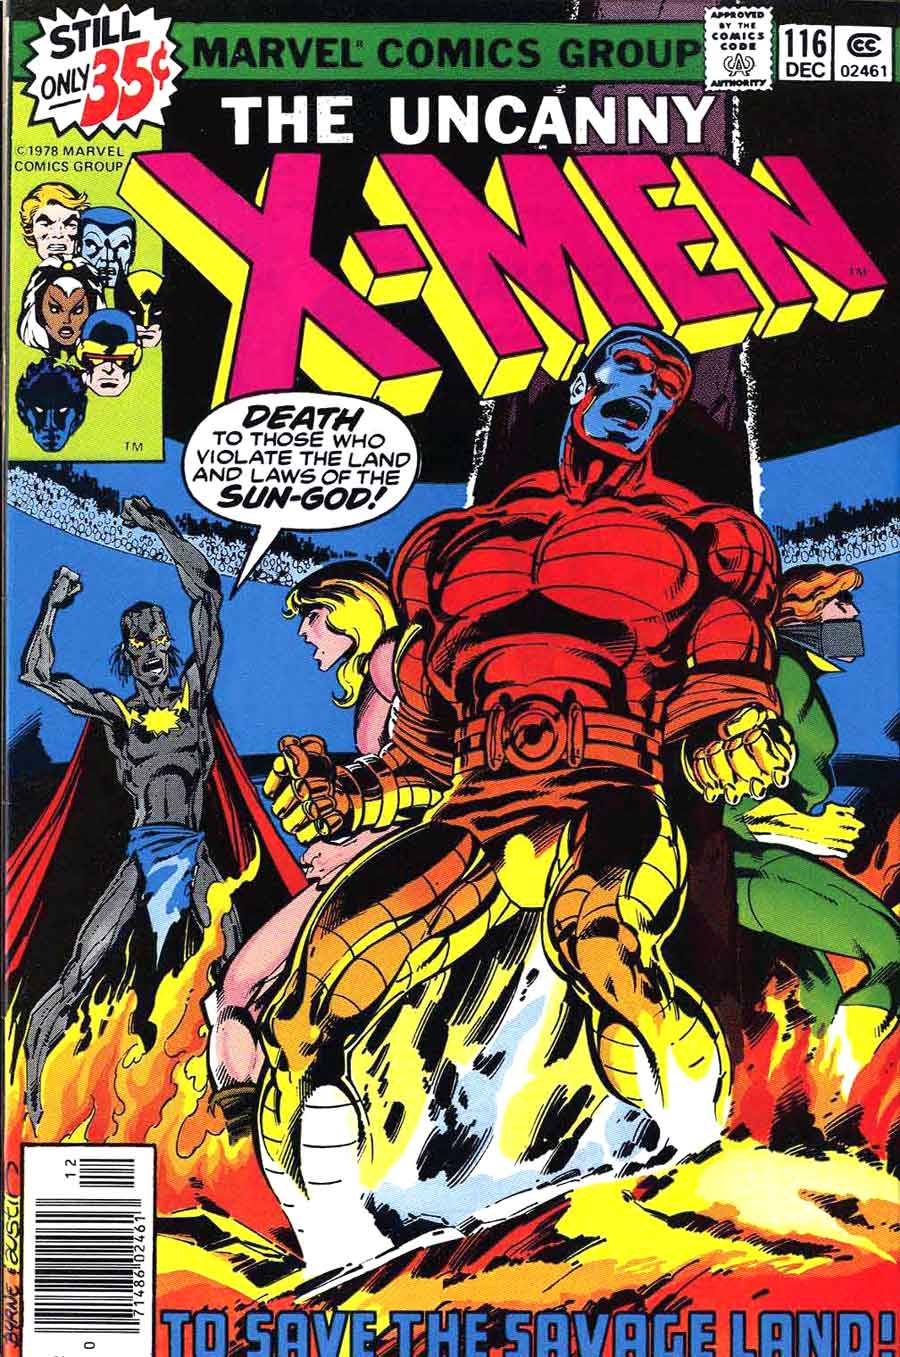 X-men v1 #116 marvel comic book cover art by John Byrne